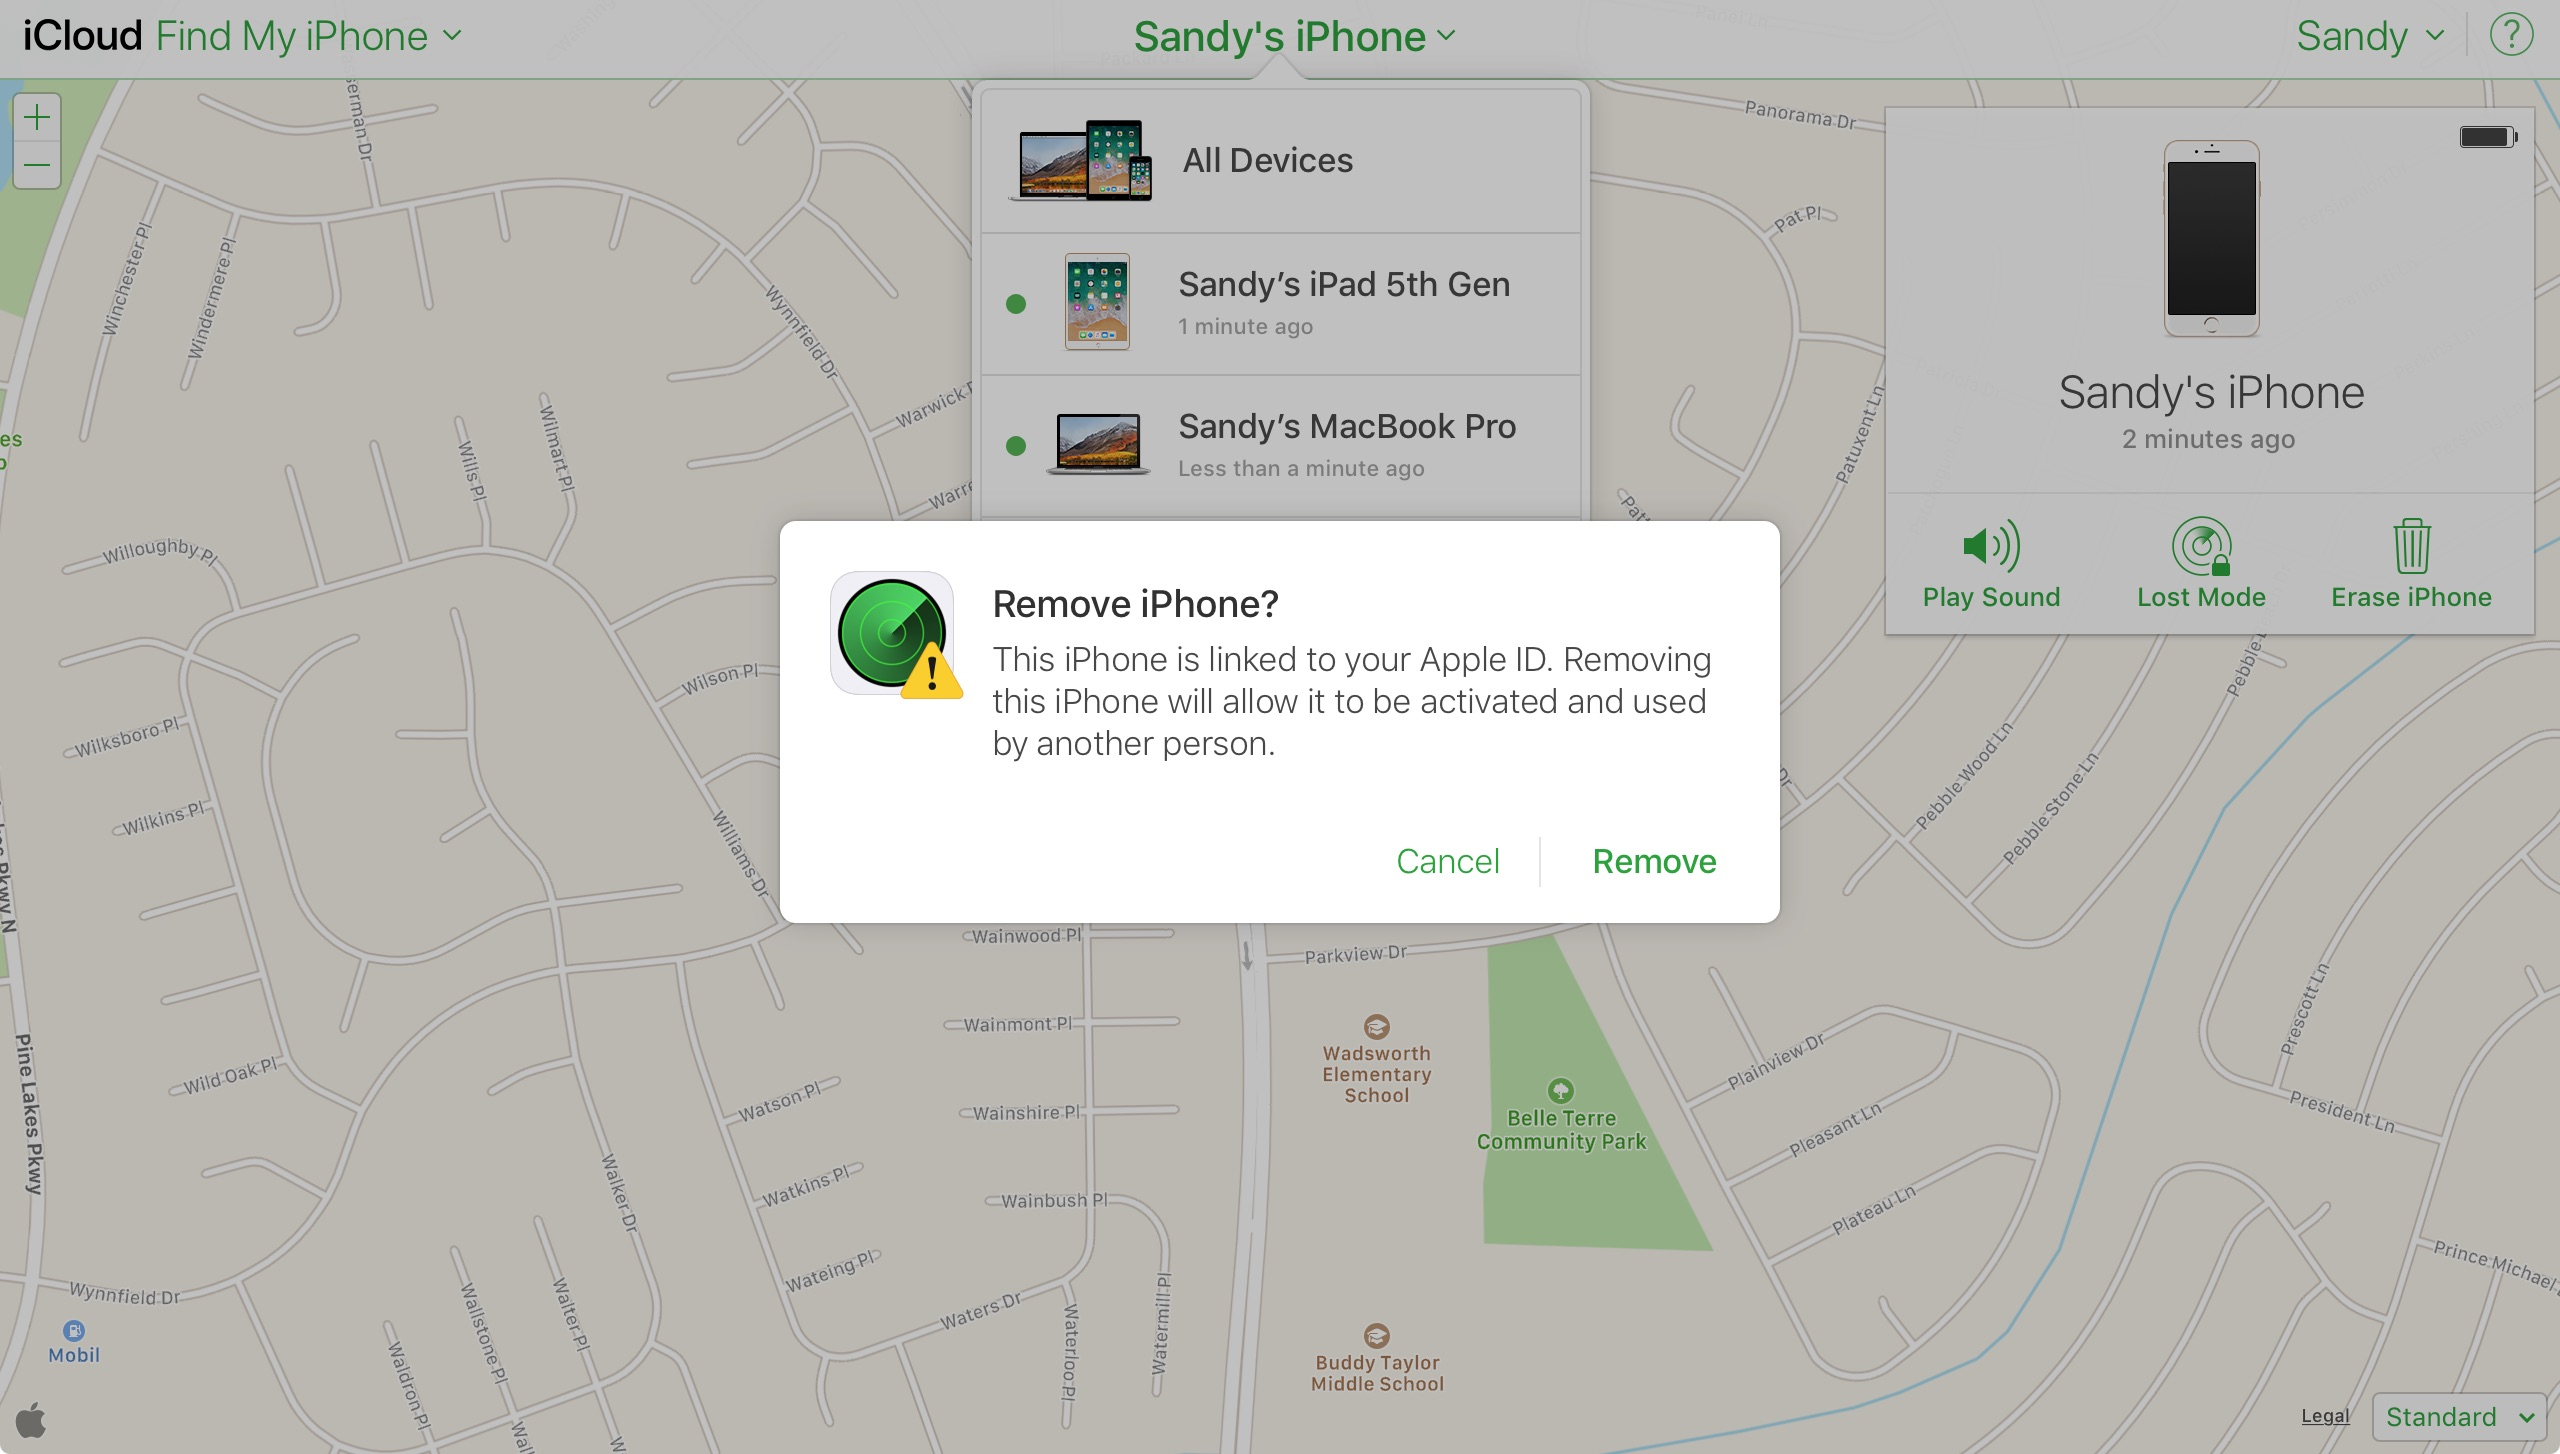 Find My iPhone on iCloudDotCom Confirm Removal